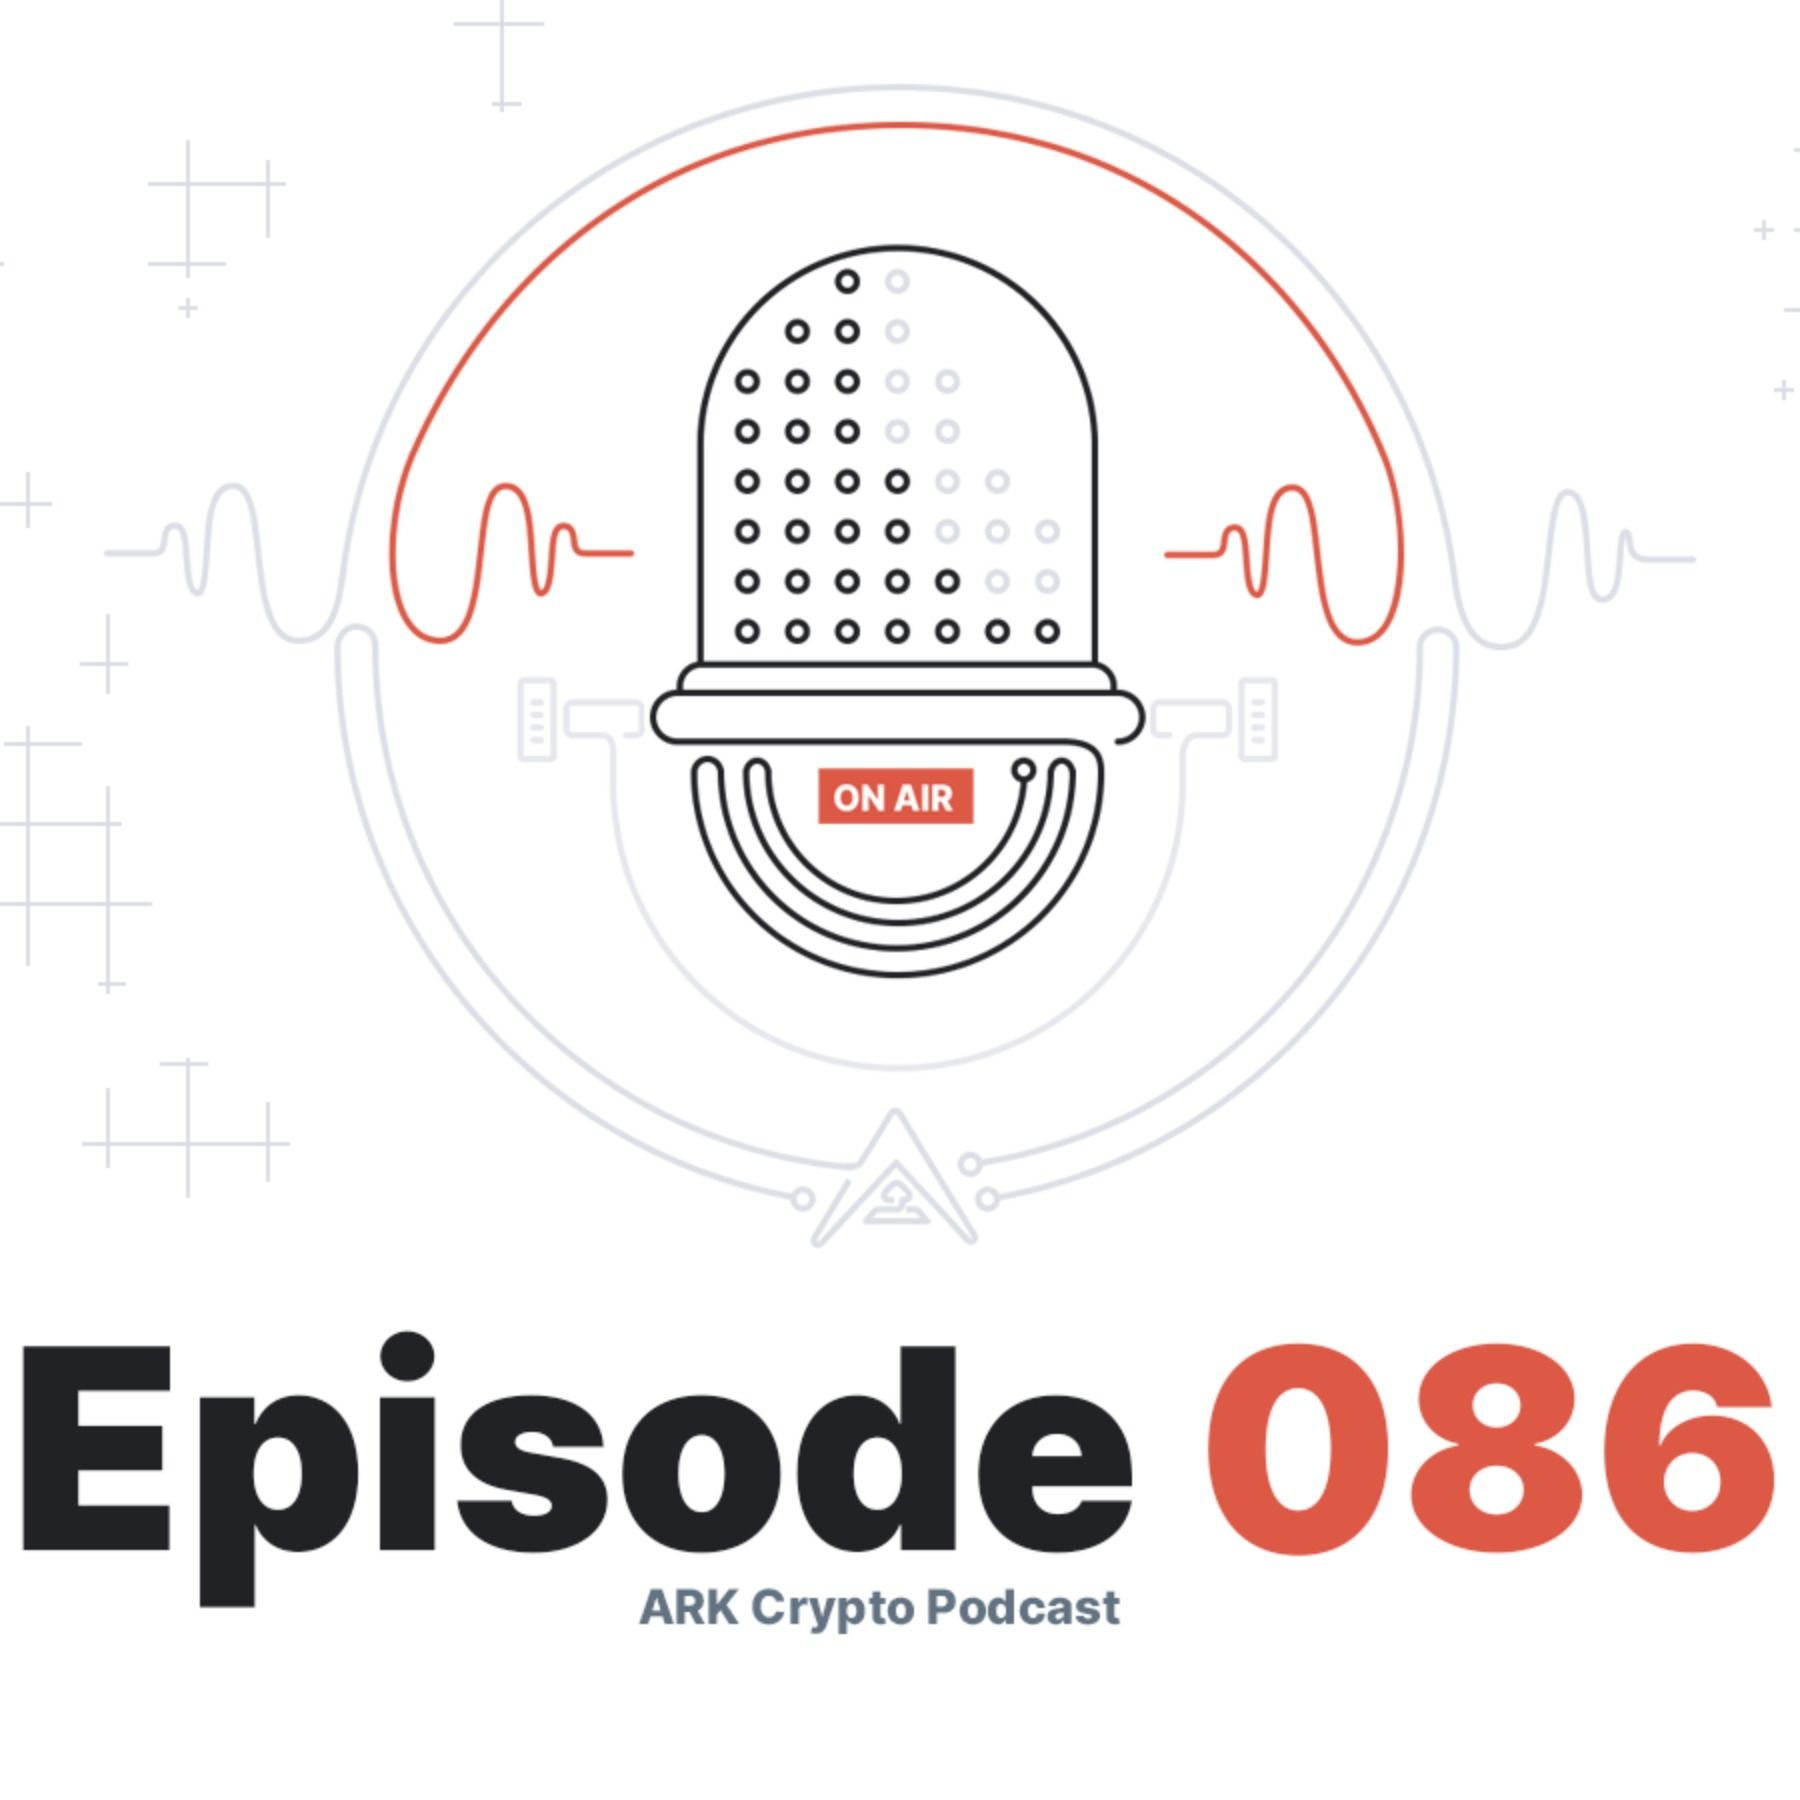 ARK Crypto Podcast #086 - ARK Core Values Deep Dive, Support